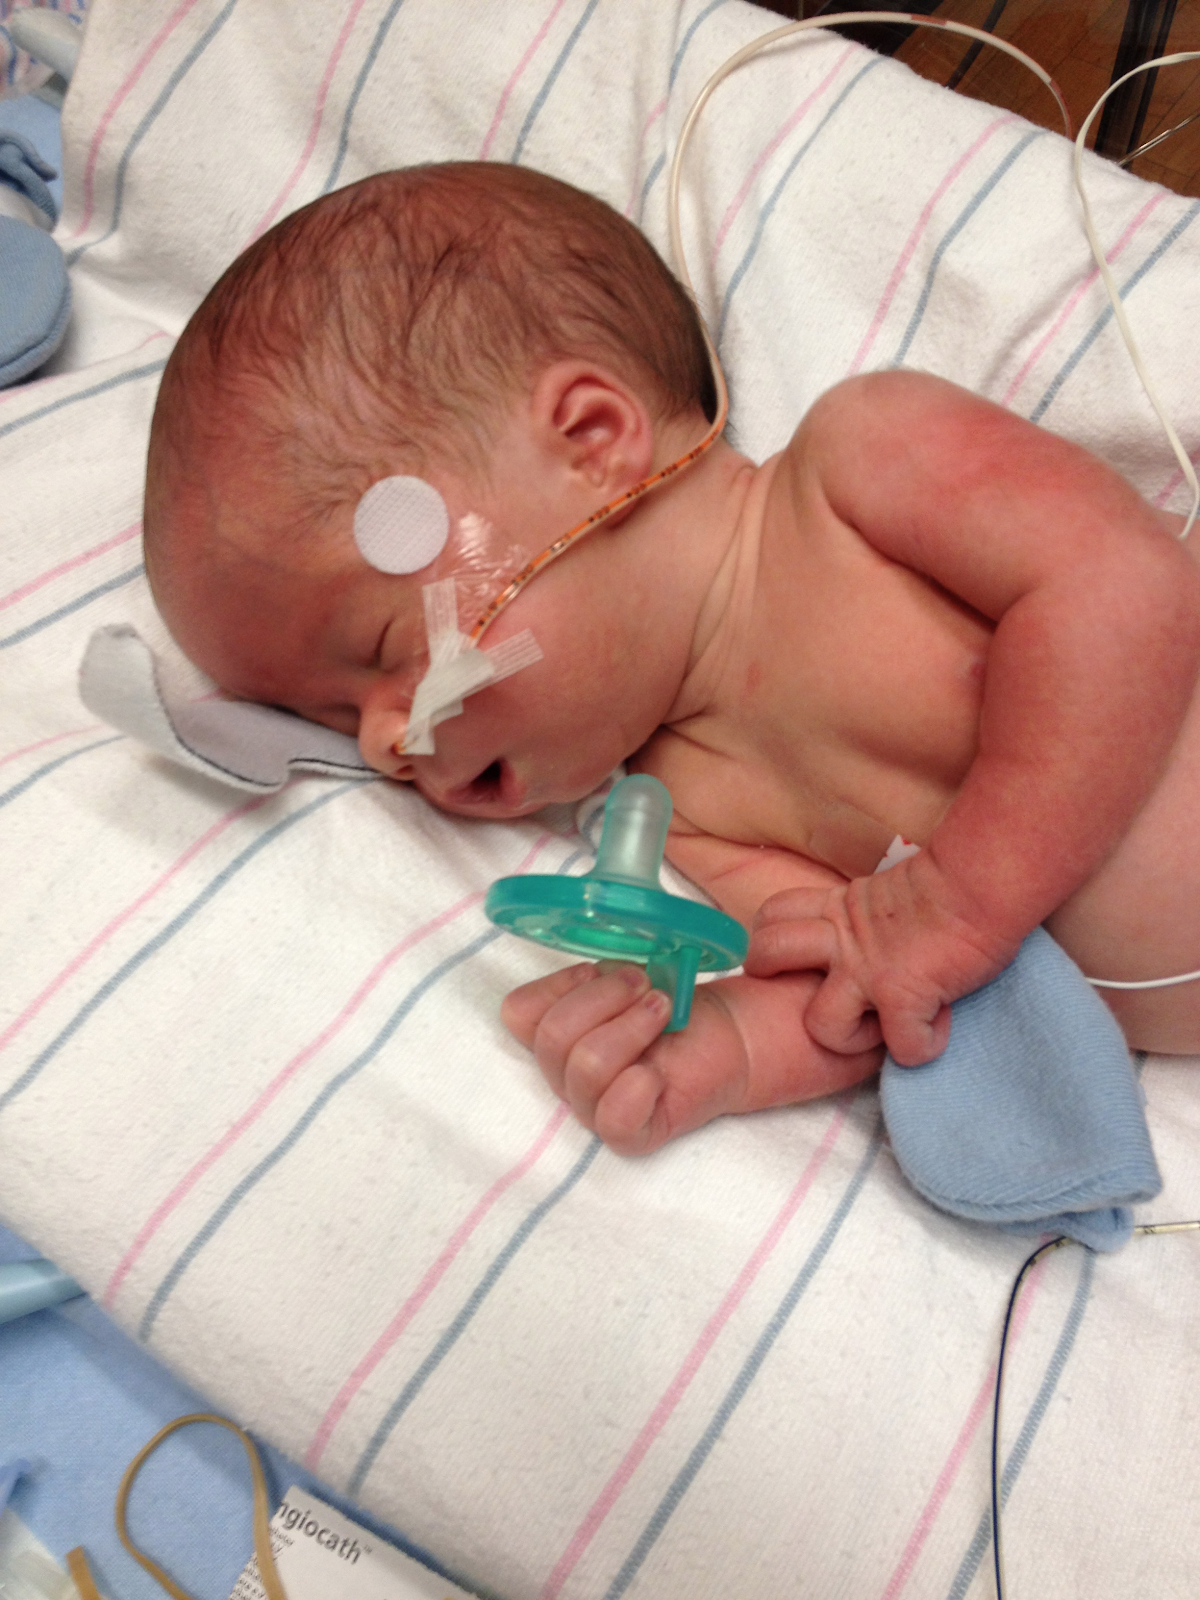 Spina bifida - Andrew was rushed to Children's of Alabama and underwent surgery.